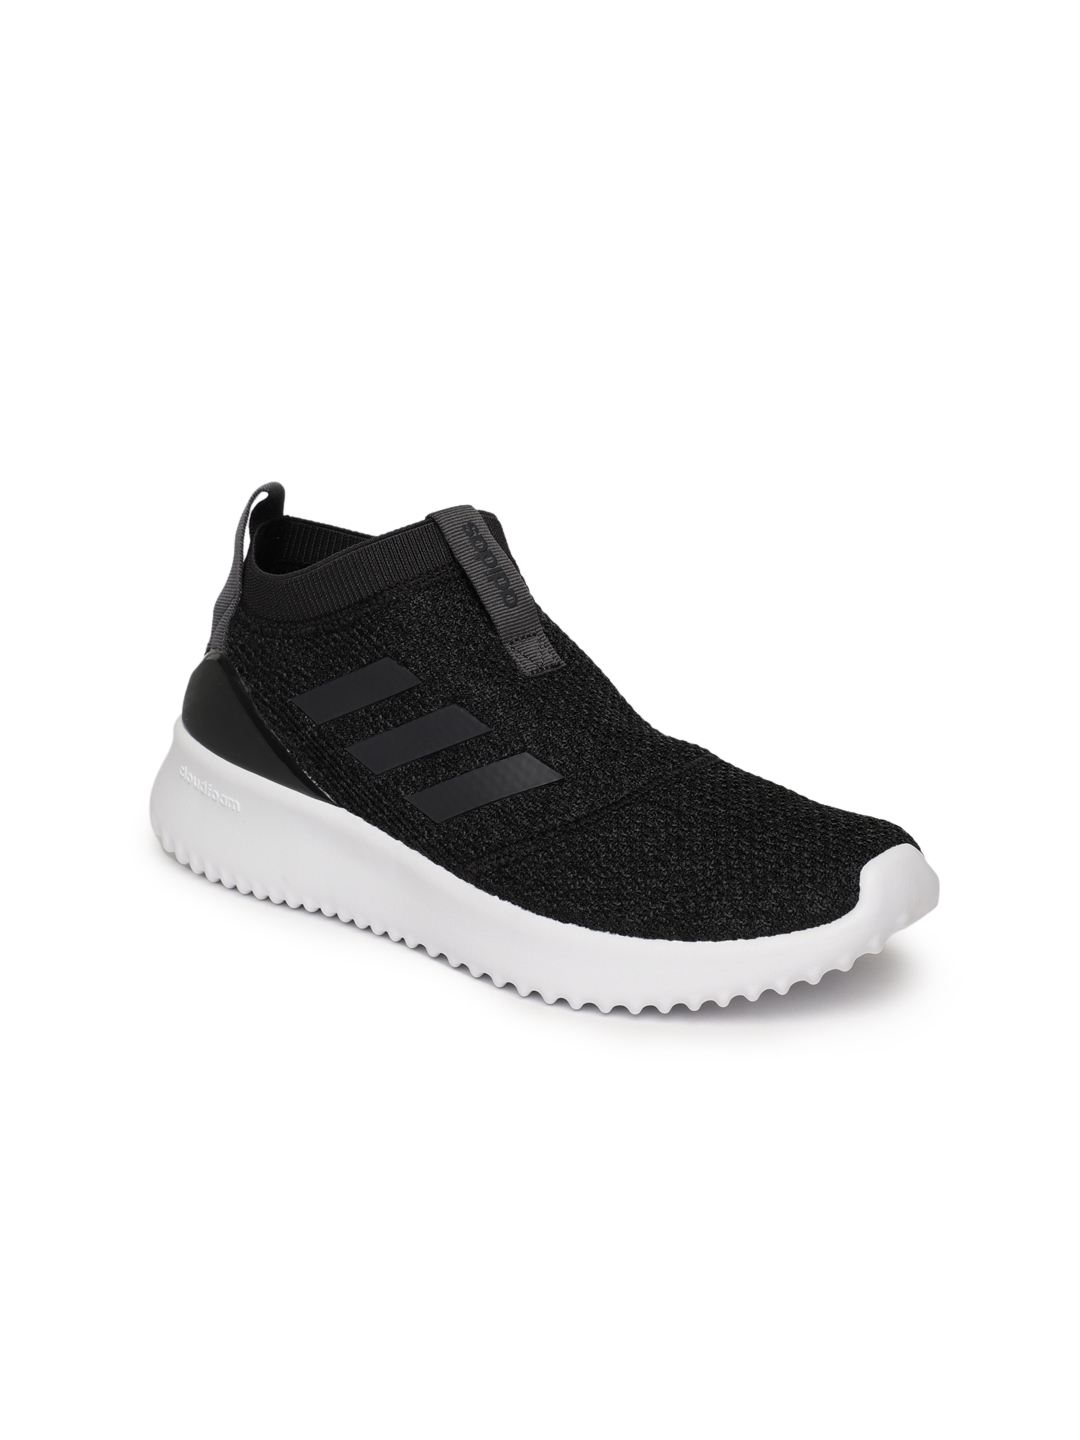 a7c600f68d44 Buy ADIDAS Women Black Solid Ultimafusion Mid Top Running Shoes ...